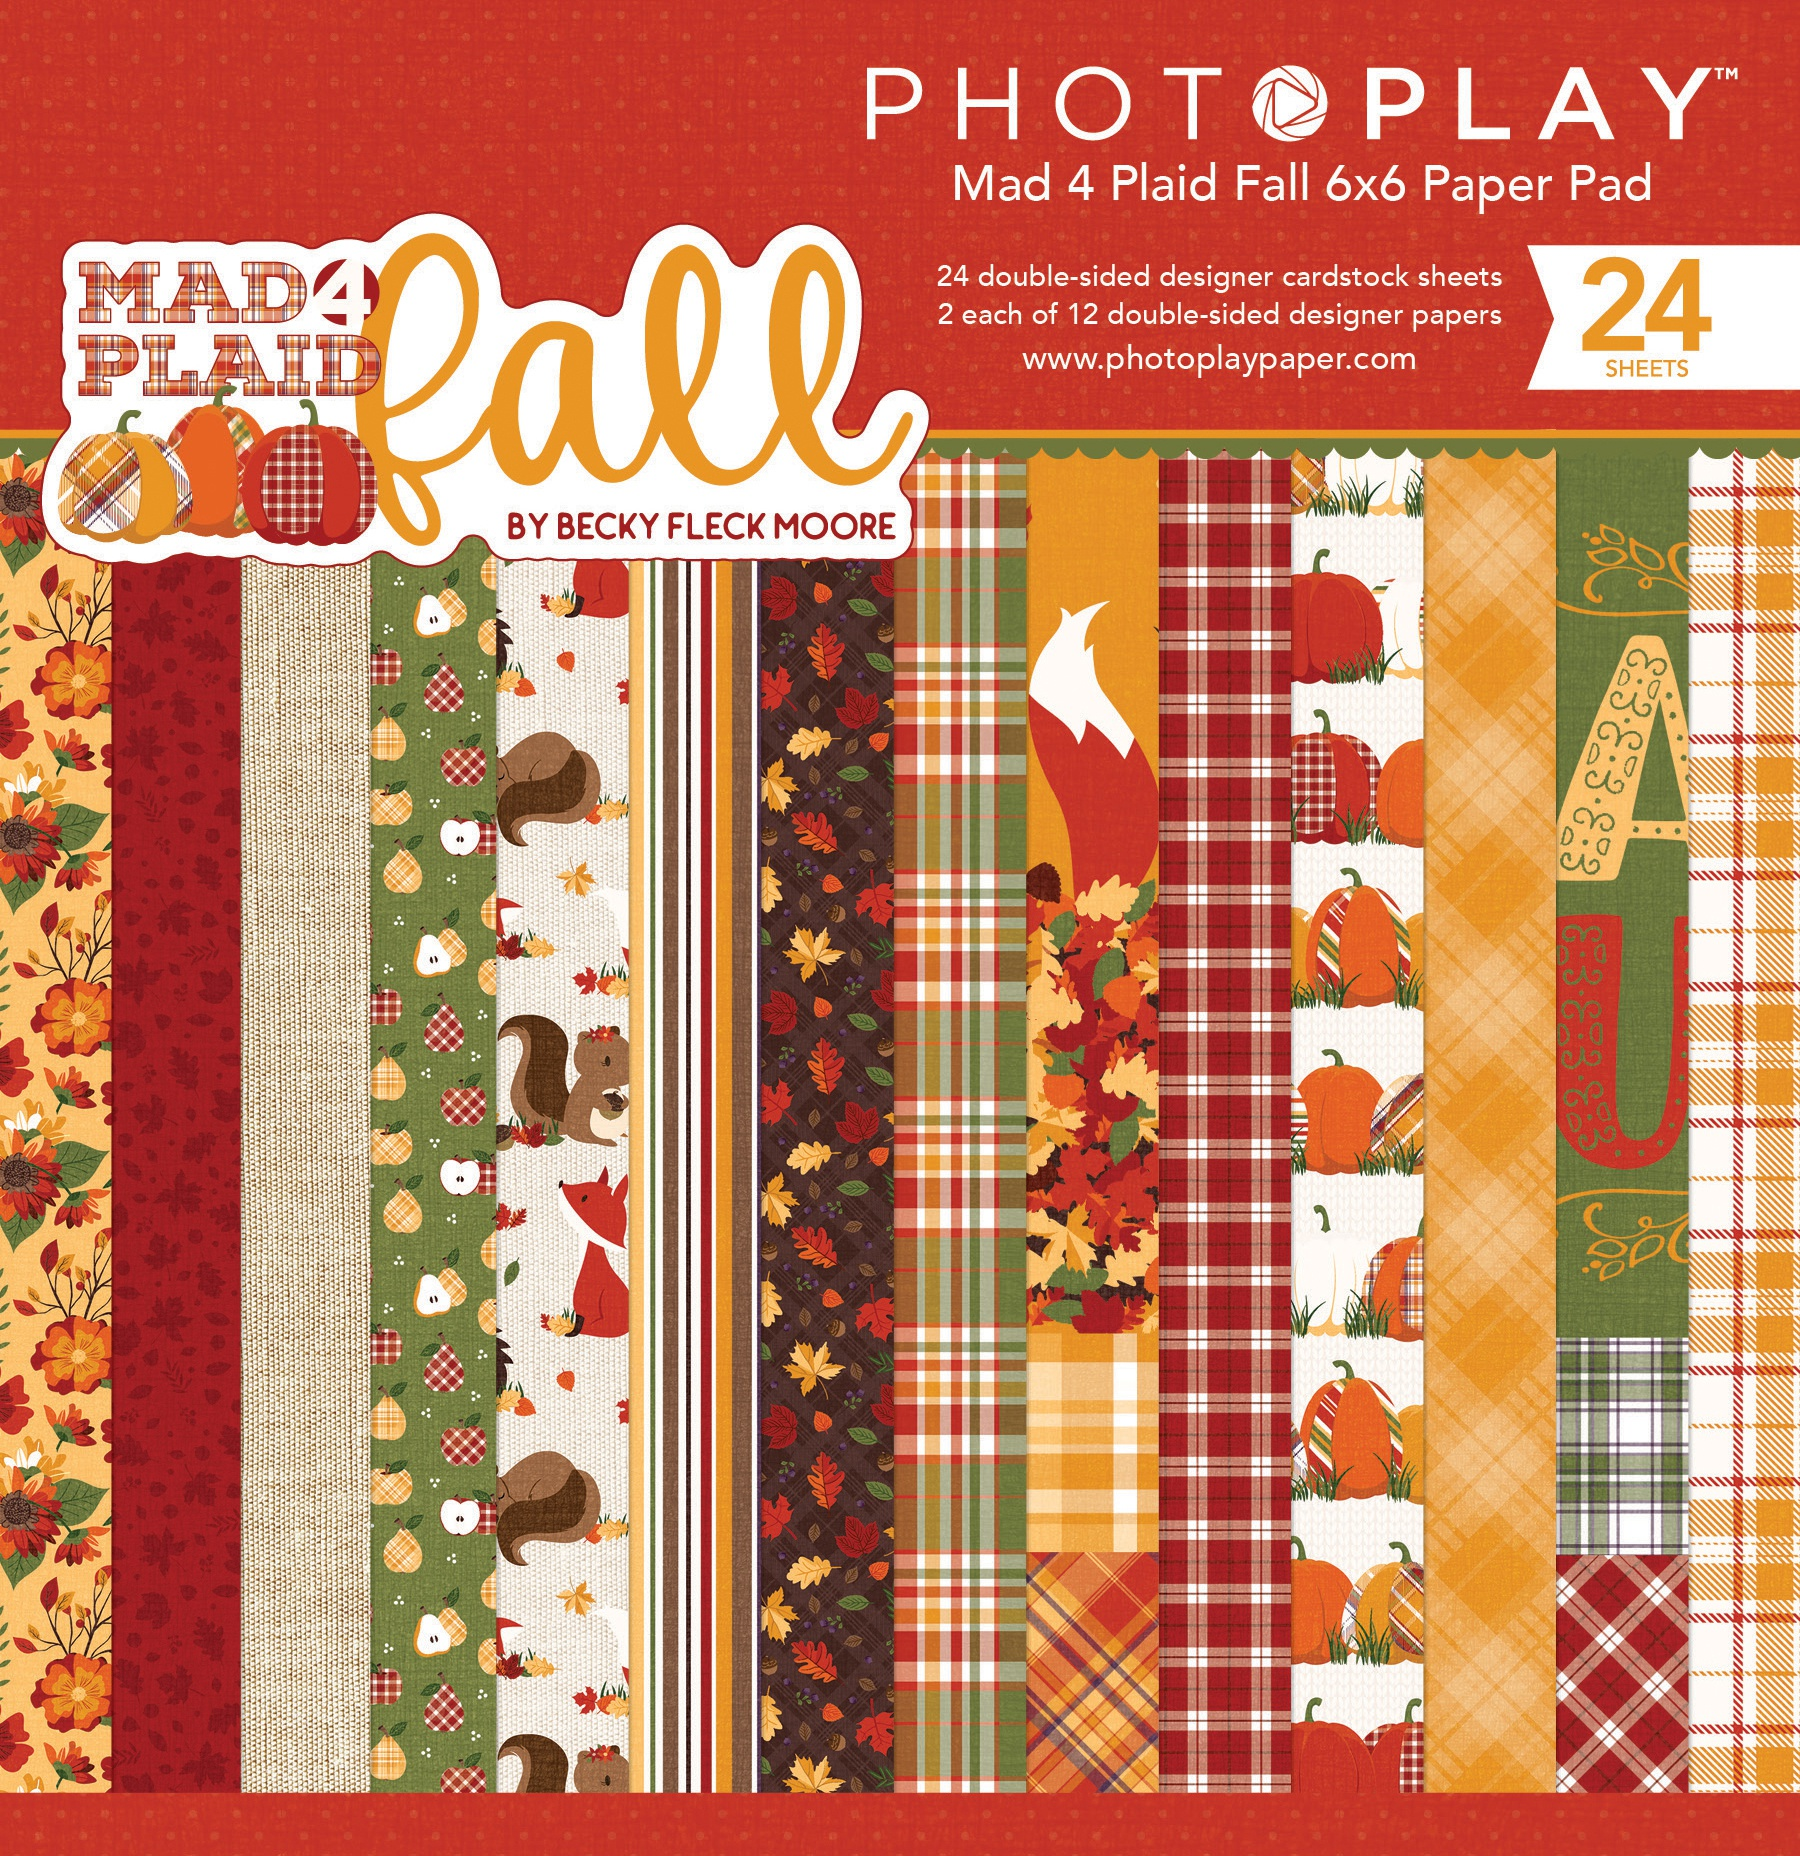 PhotoPlay Double-Sided Paper Pad 6X6 24/Pkg-Mad 4 Plaid Fall, 8 Designs/3 Each